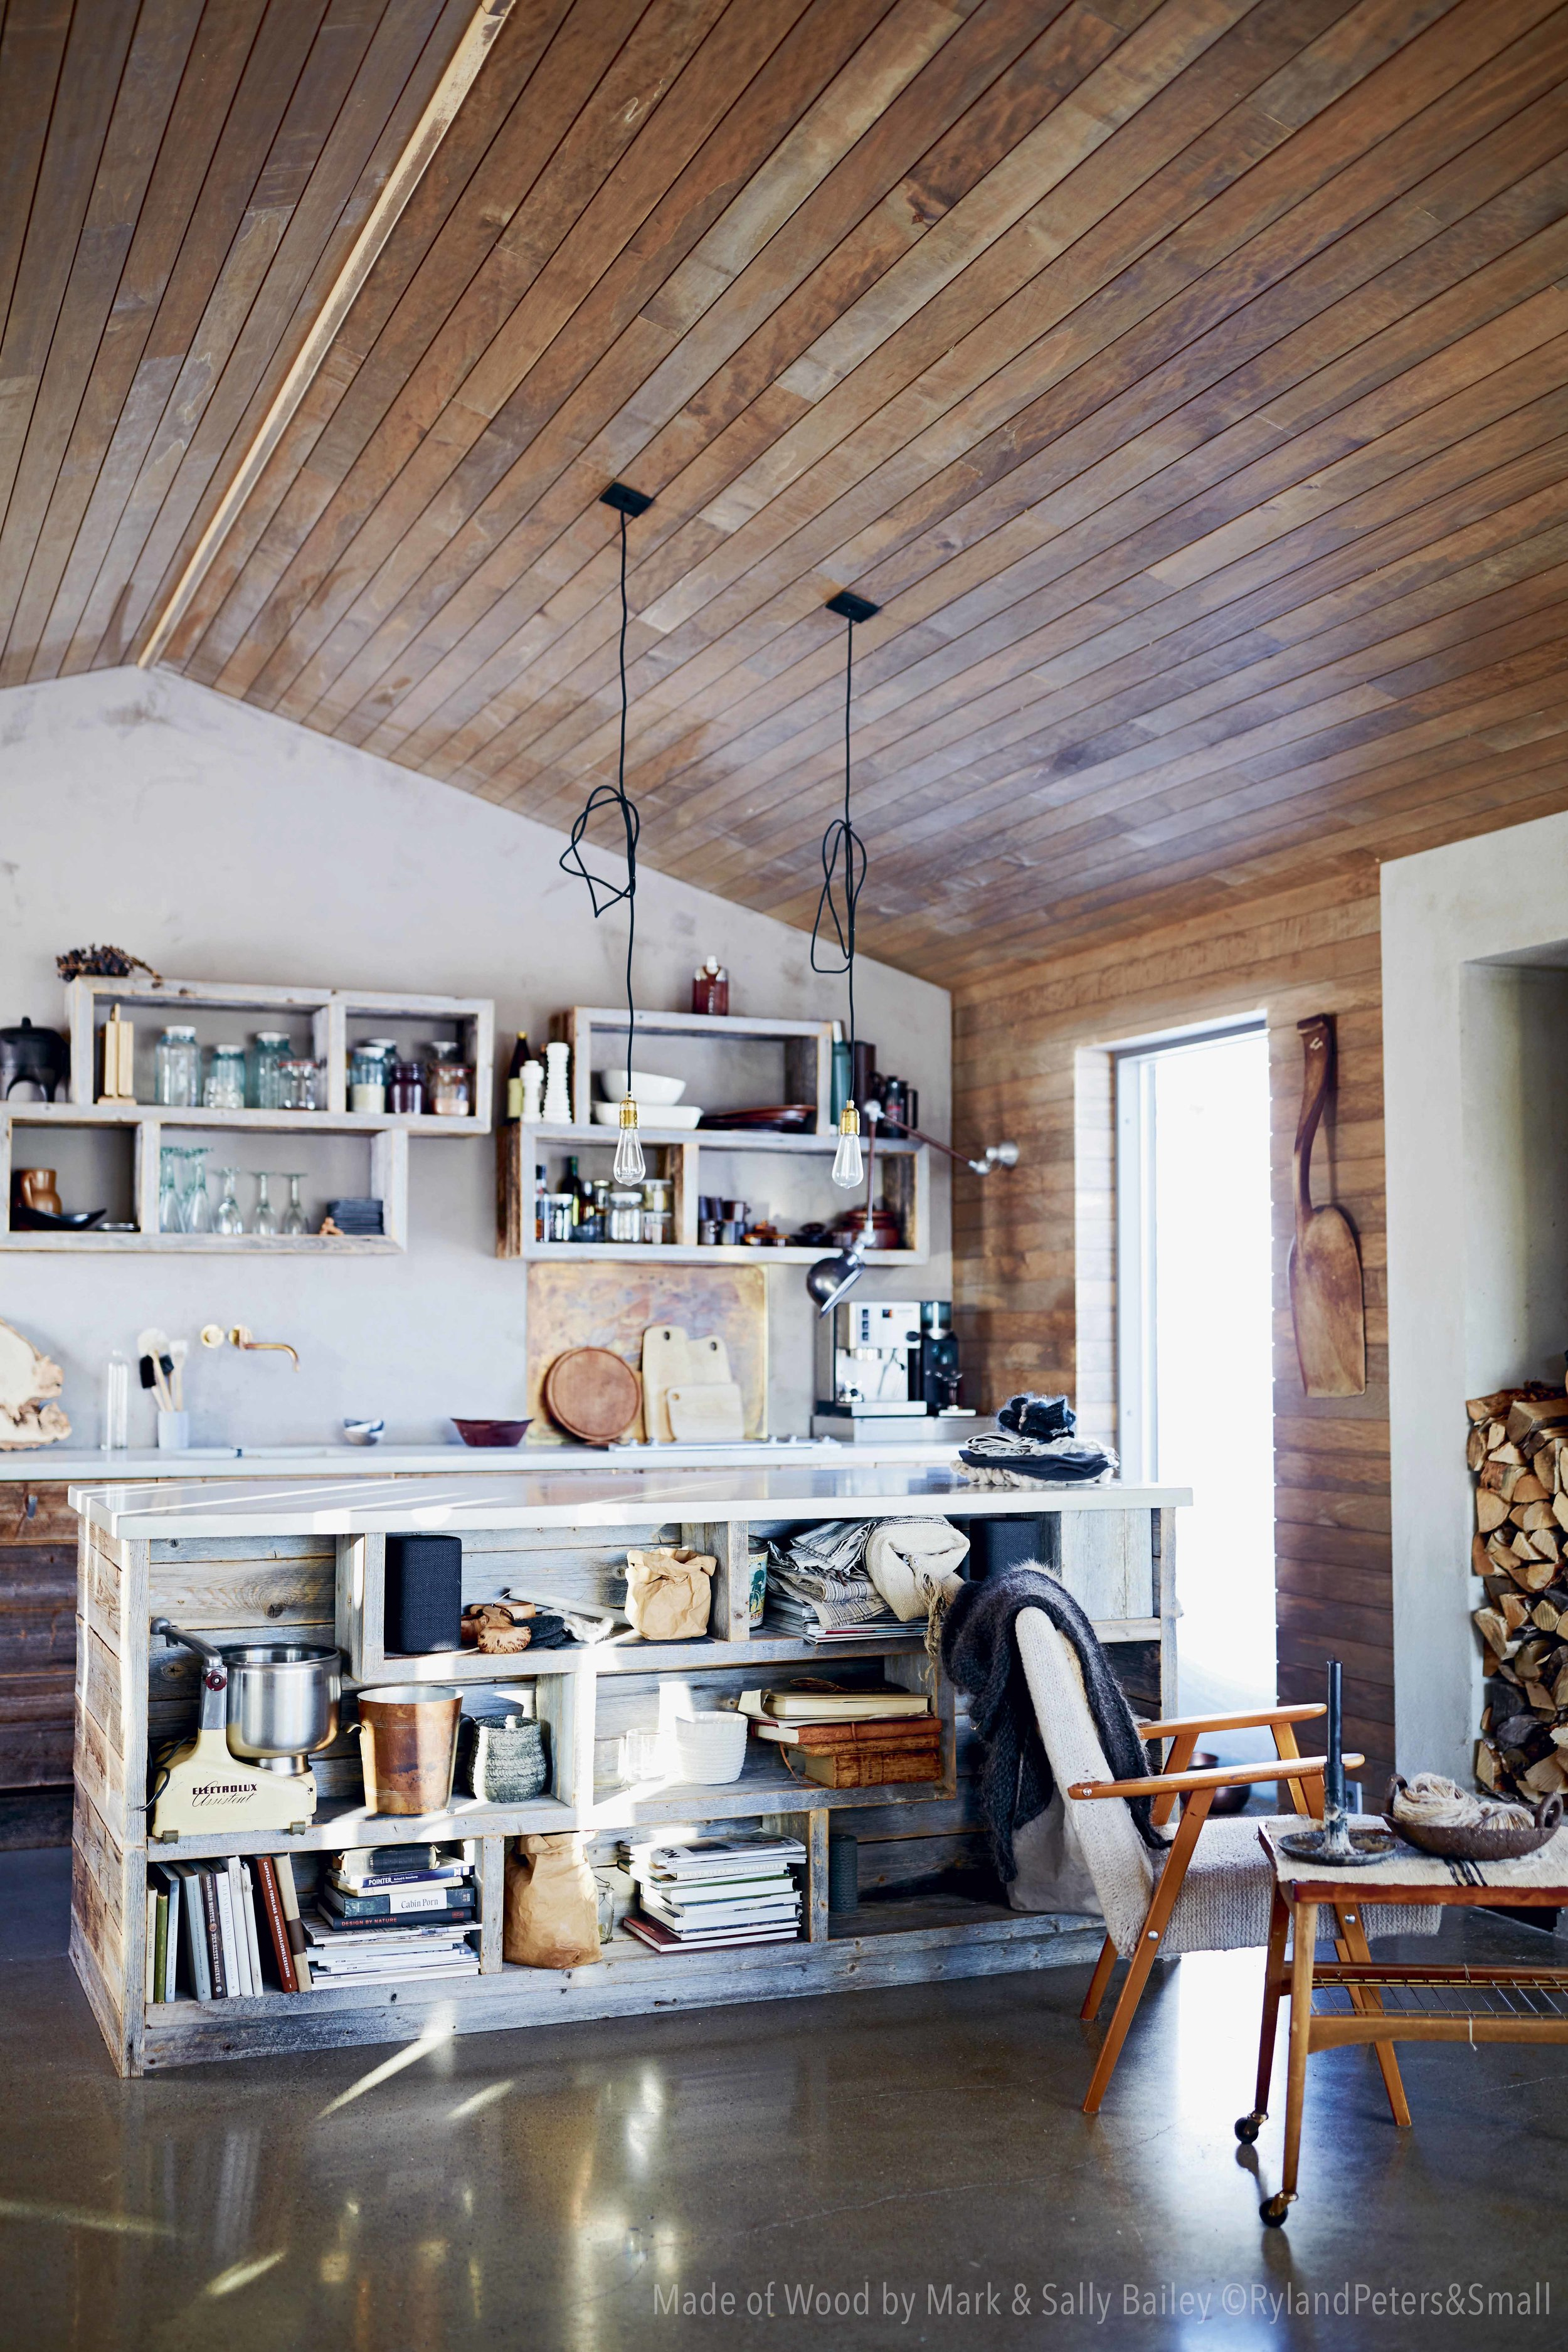 """The more than 100 years old barn wood in our cabin kitchen balanses the rough concrete. Photo from the book """"Made of Wood"""" by Mark og Sally Bailey, photo by Debi Treloar, copyright Ryland Peters & Small."""